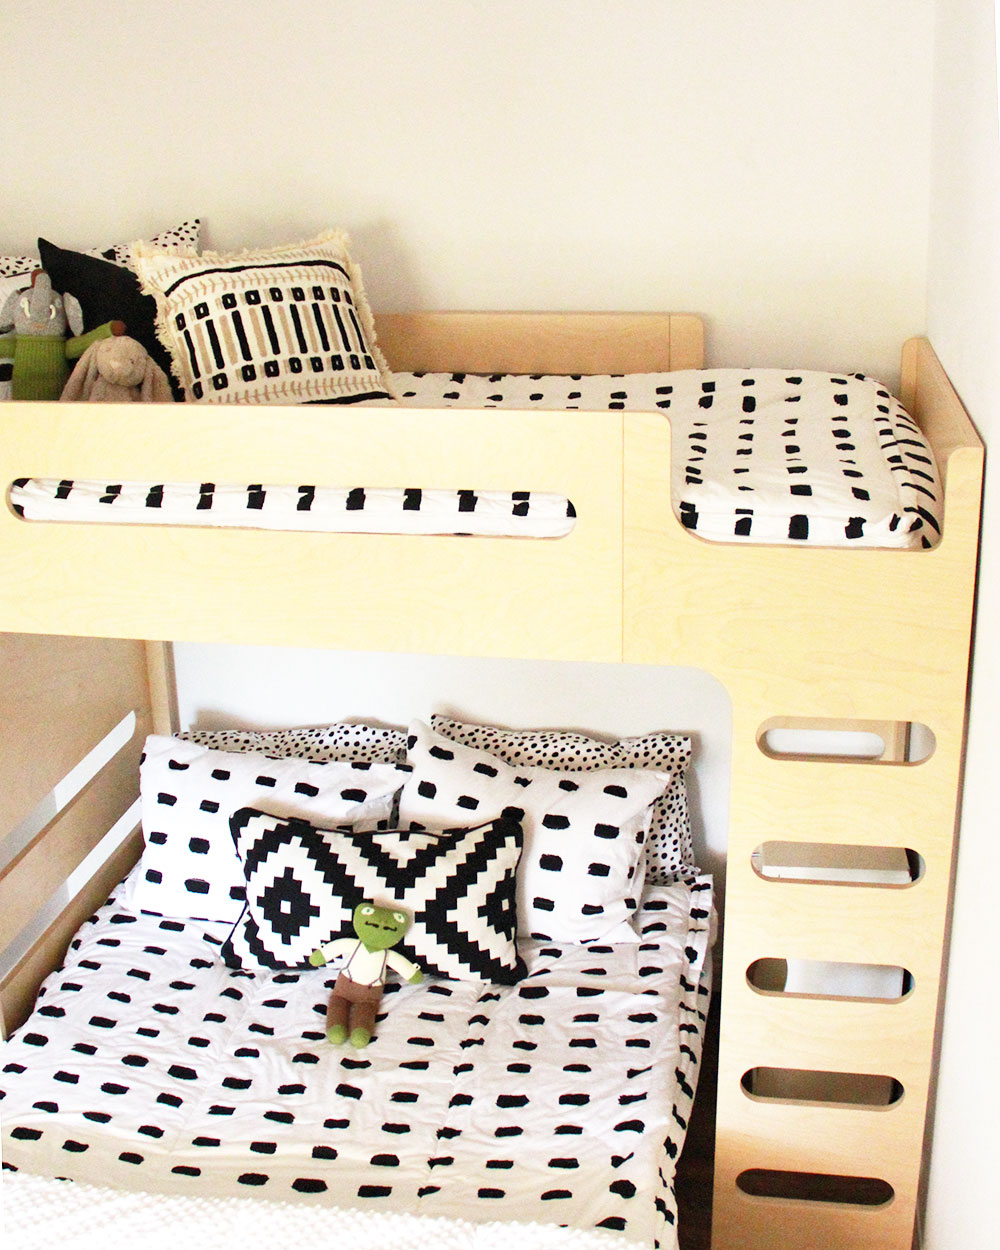 we love our new beddy's bedding that zips up easy to make! perfect for the boy's new bunk beds! | thelovedesignedlife.com